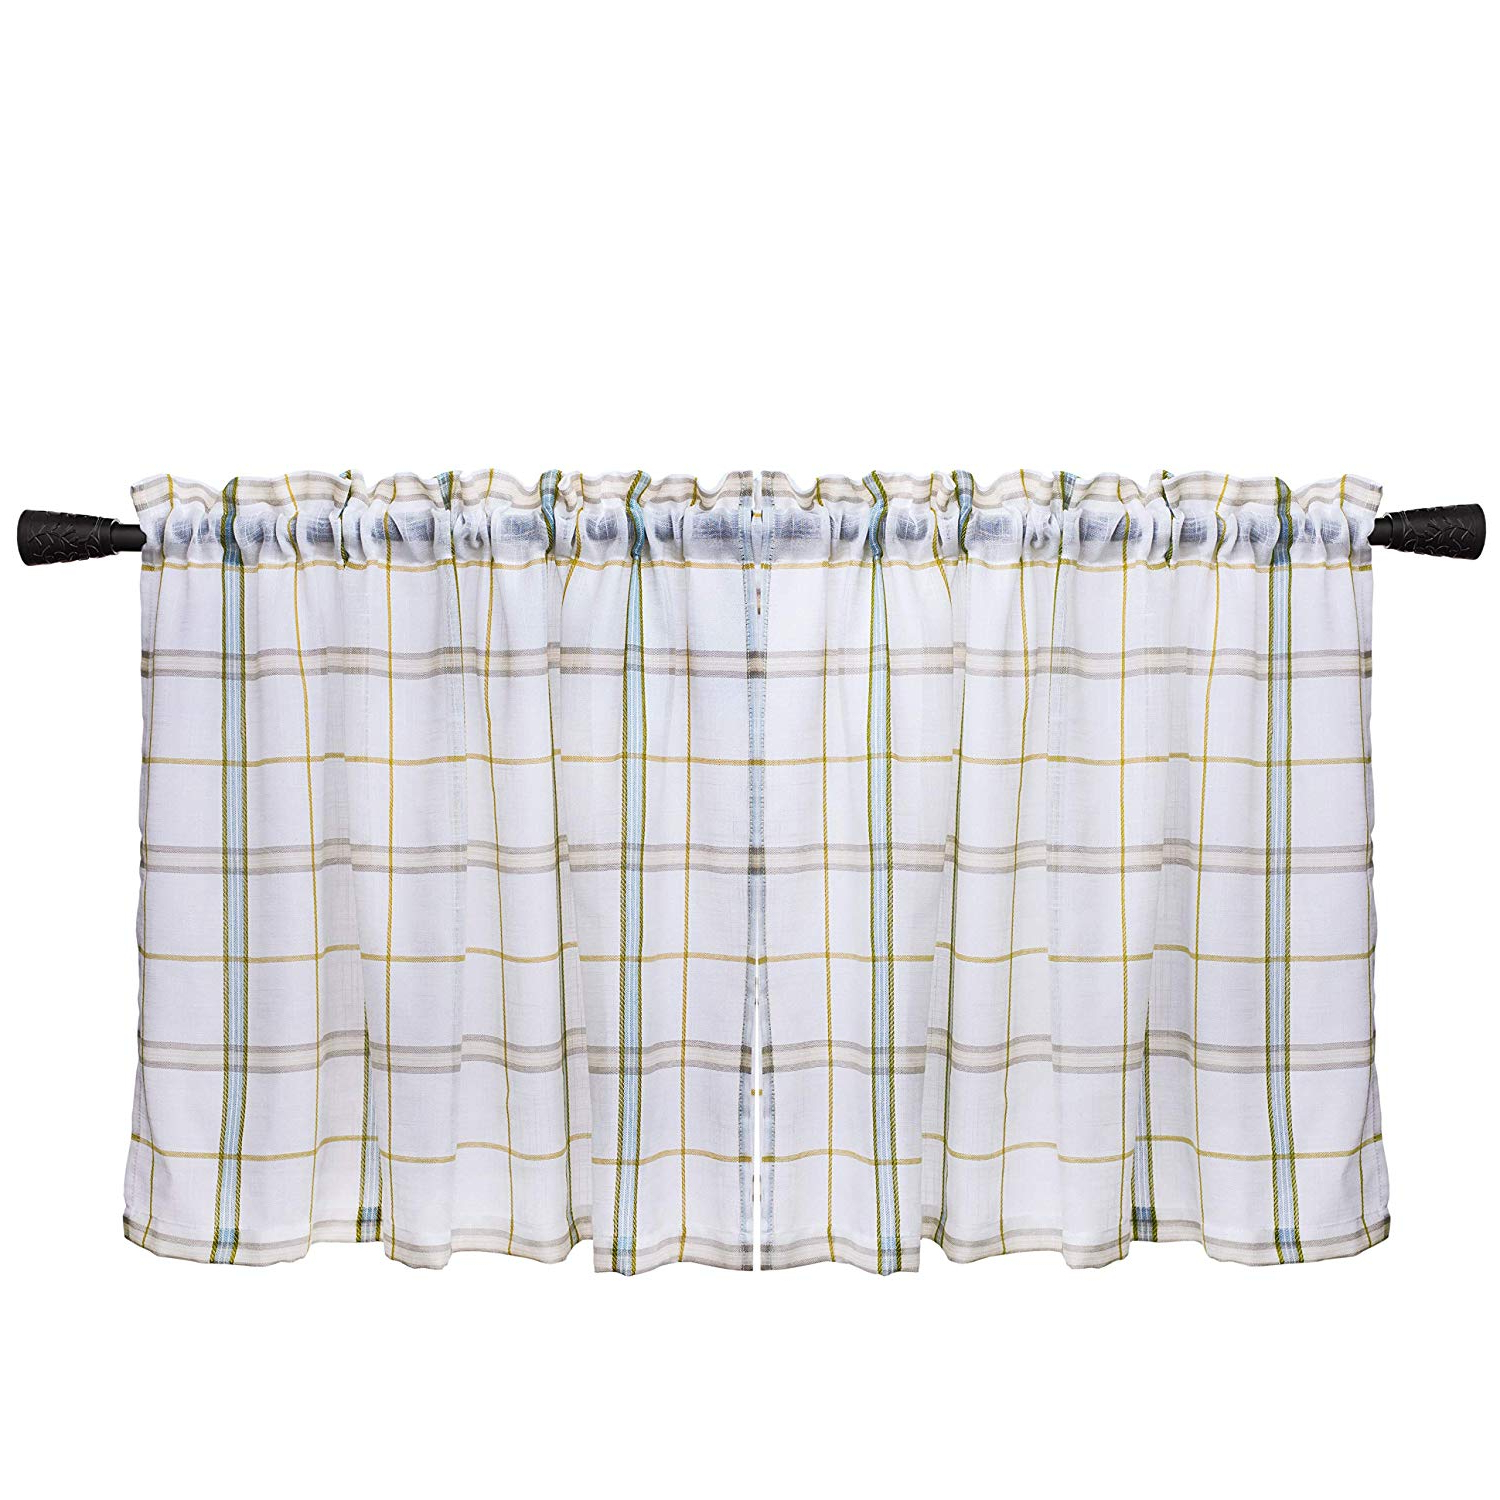 Most Recently Released Classic Black And White Curtain Tiers In Amazon: White Check Kitchen Tiers, Linen Look Gingham (View 6 of 20)